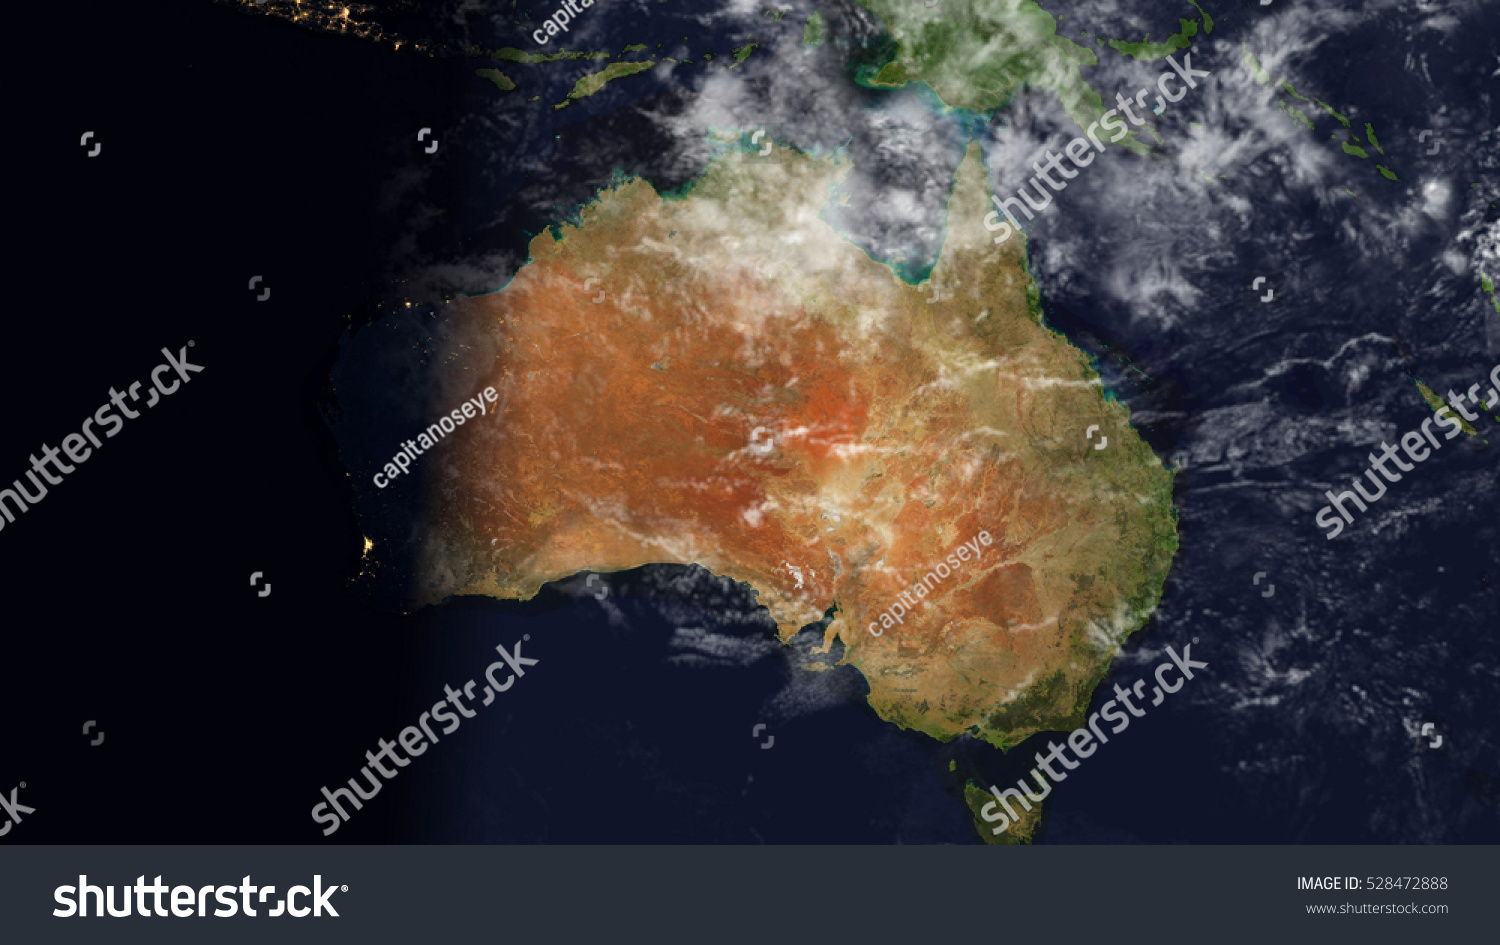 Map Of Australia From Space.Australia Satellite Space View Planet Earth Stock Illustration 528472888